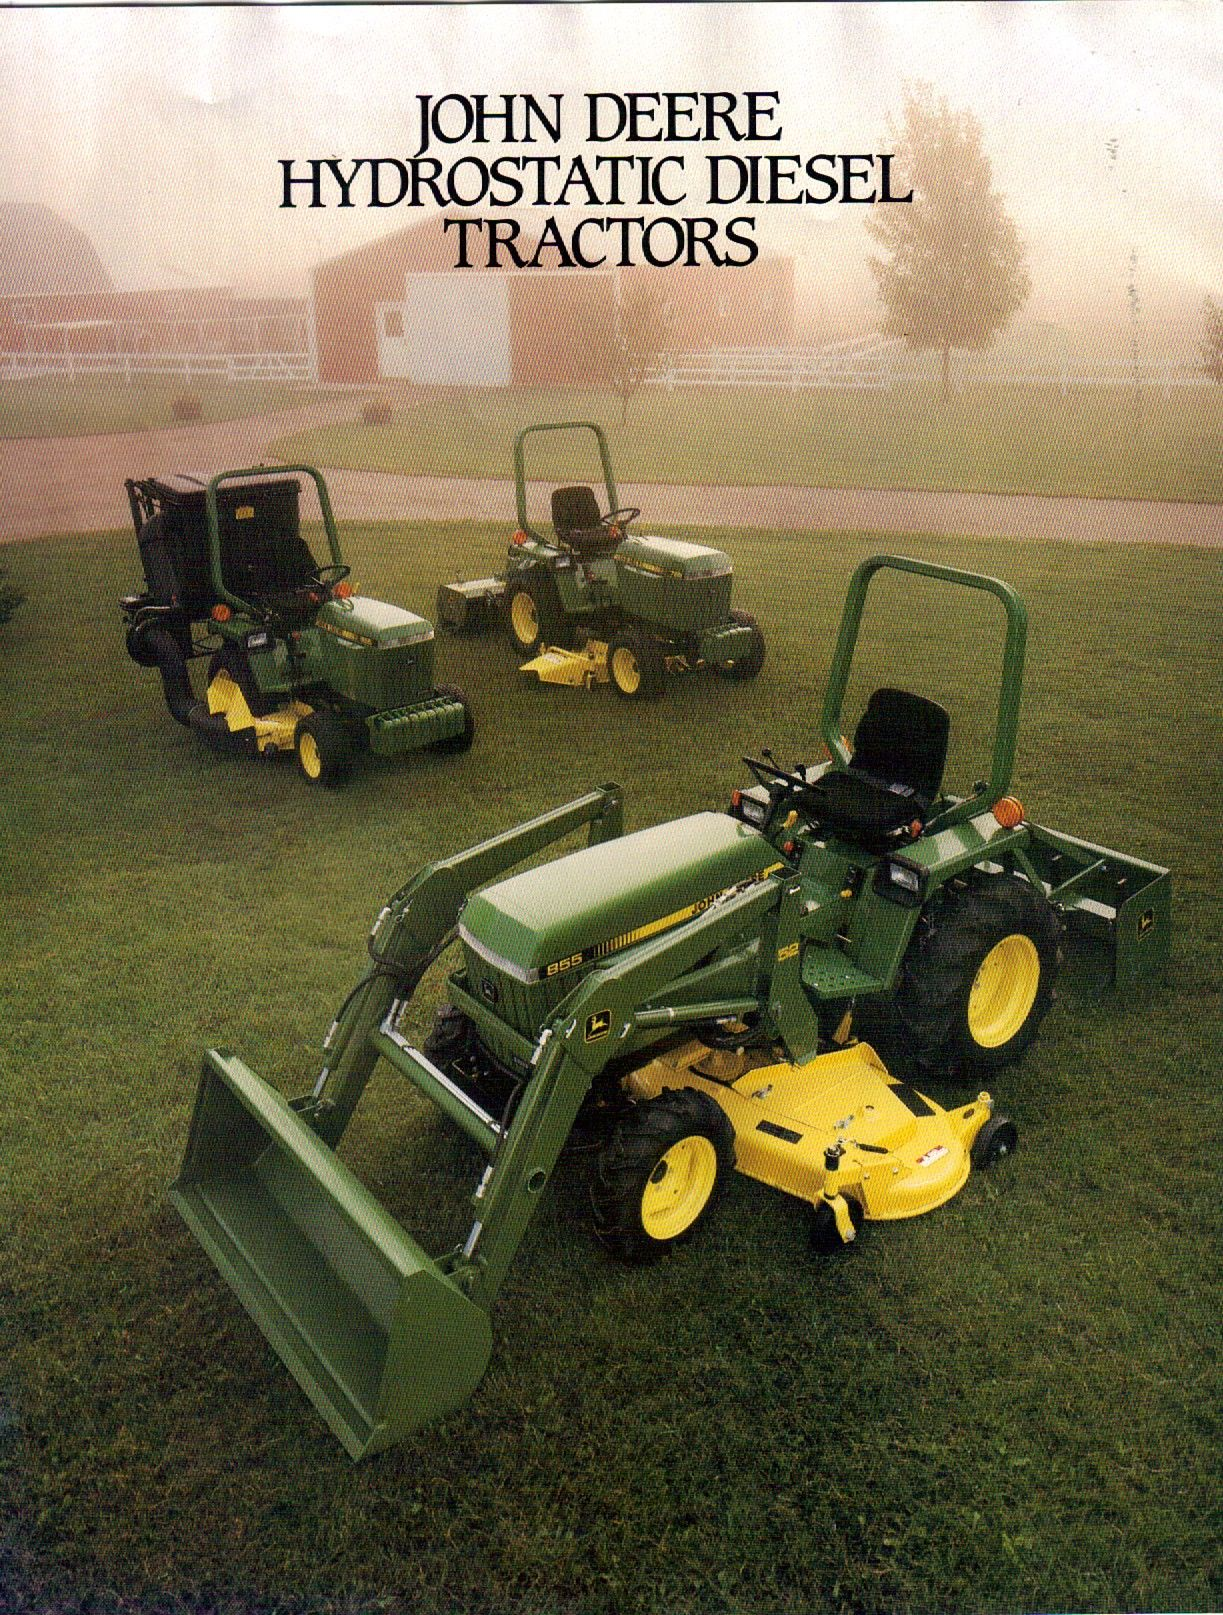 John Deere 655-755-855 Compact Diesel Tractor Brochure, these tractors sure  have become collectible!